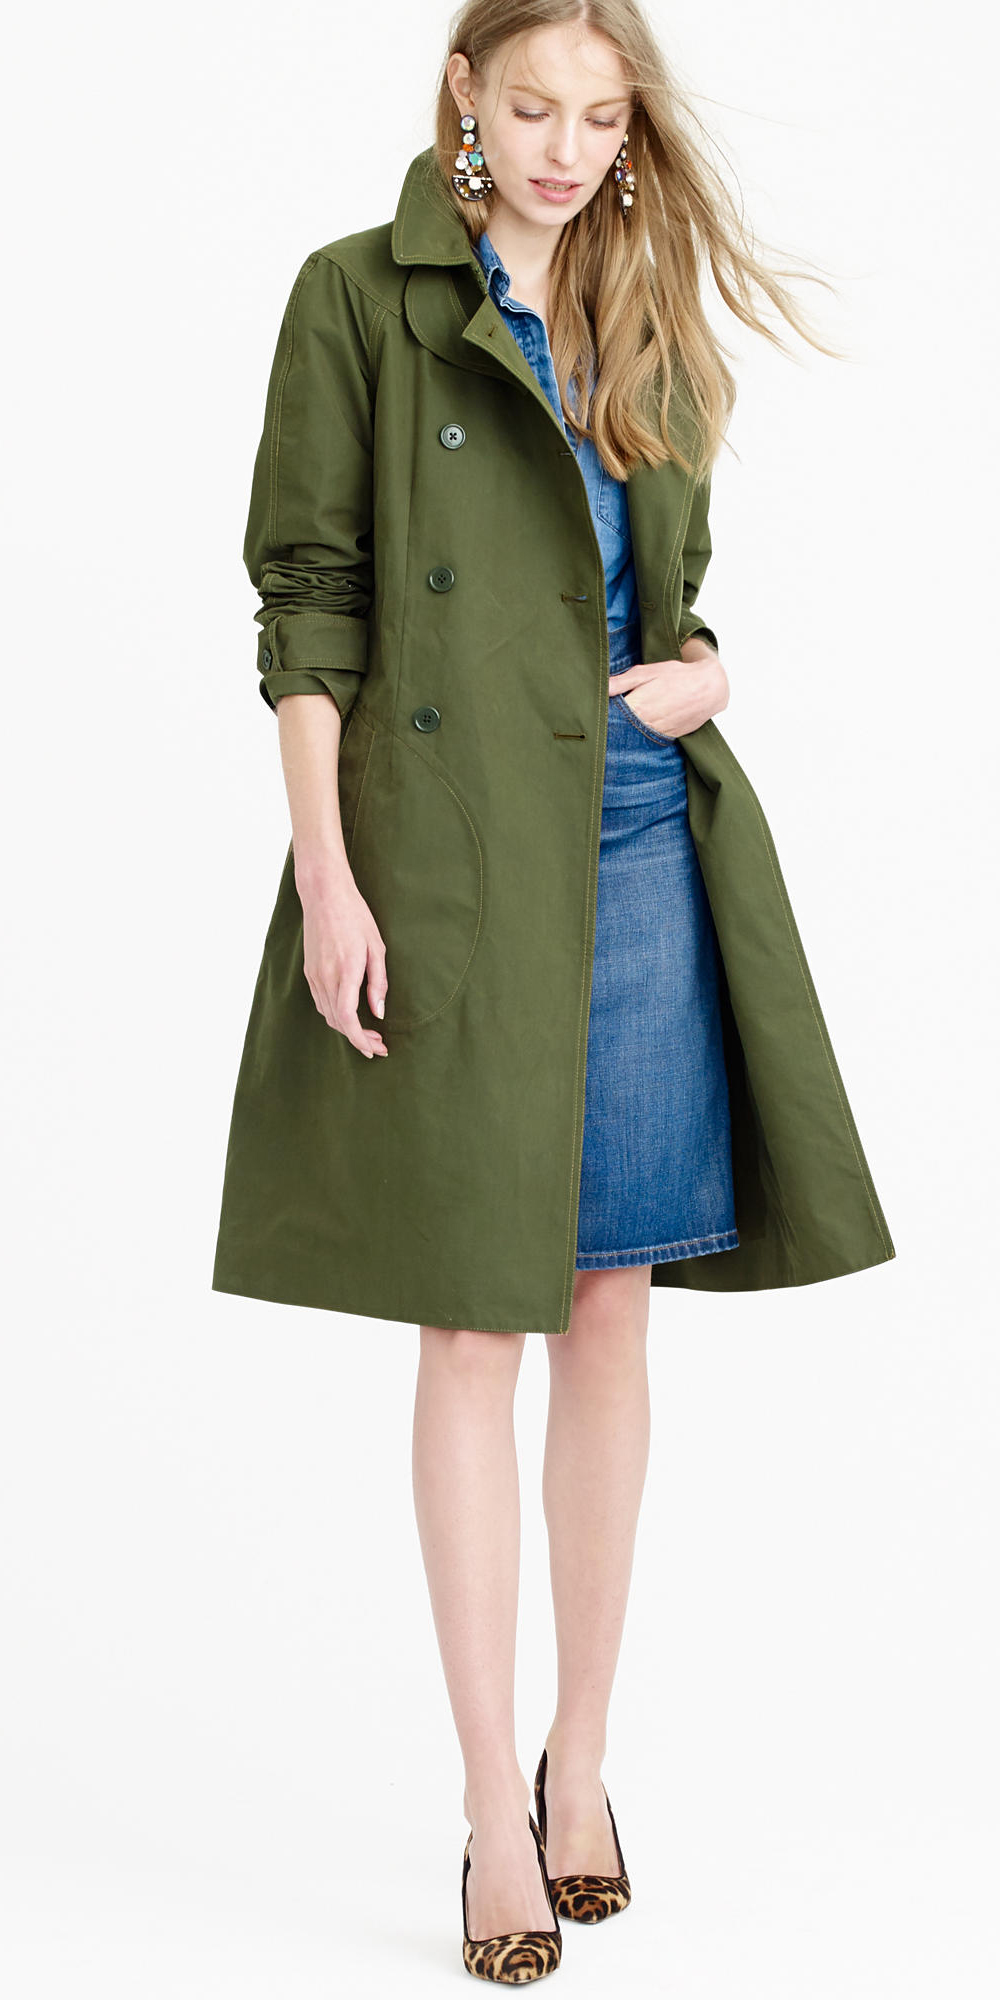 blue-med-pencil-skirt-blue-med-collared-shirt-earrings-blonde-tan-shoe-pumps-leopard-green-olive-jacket-coat-trench-fall-winter-lunch.jpg